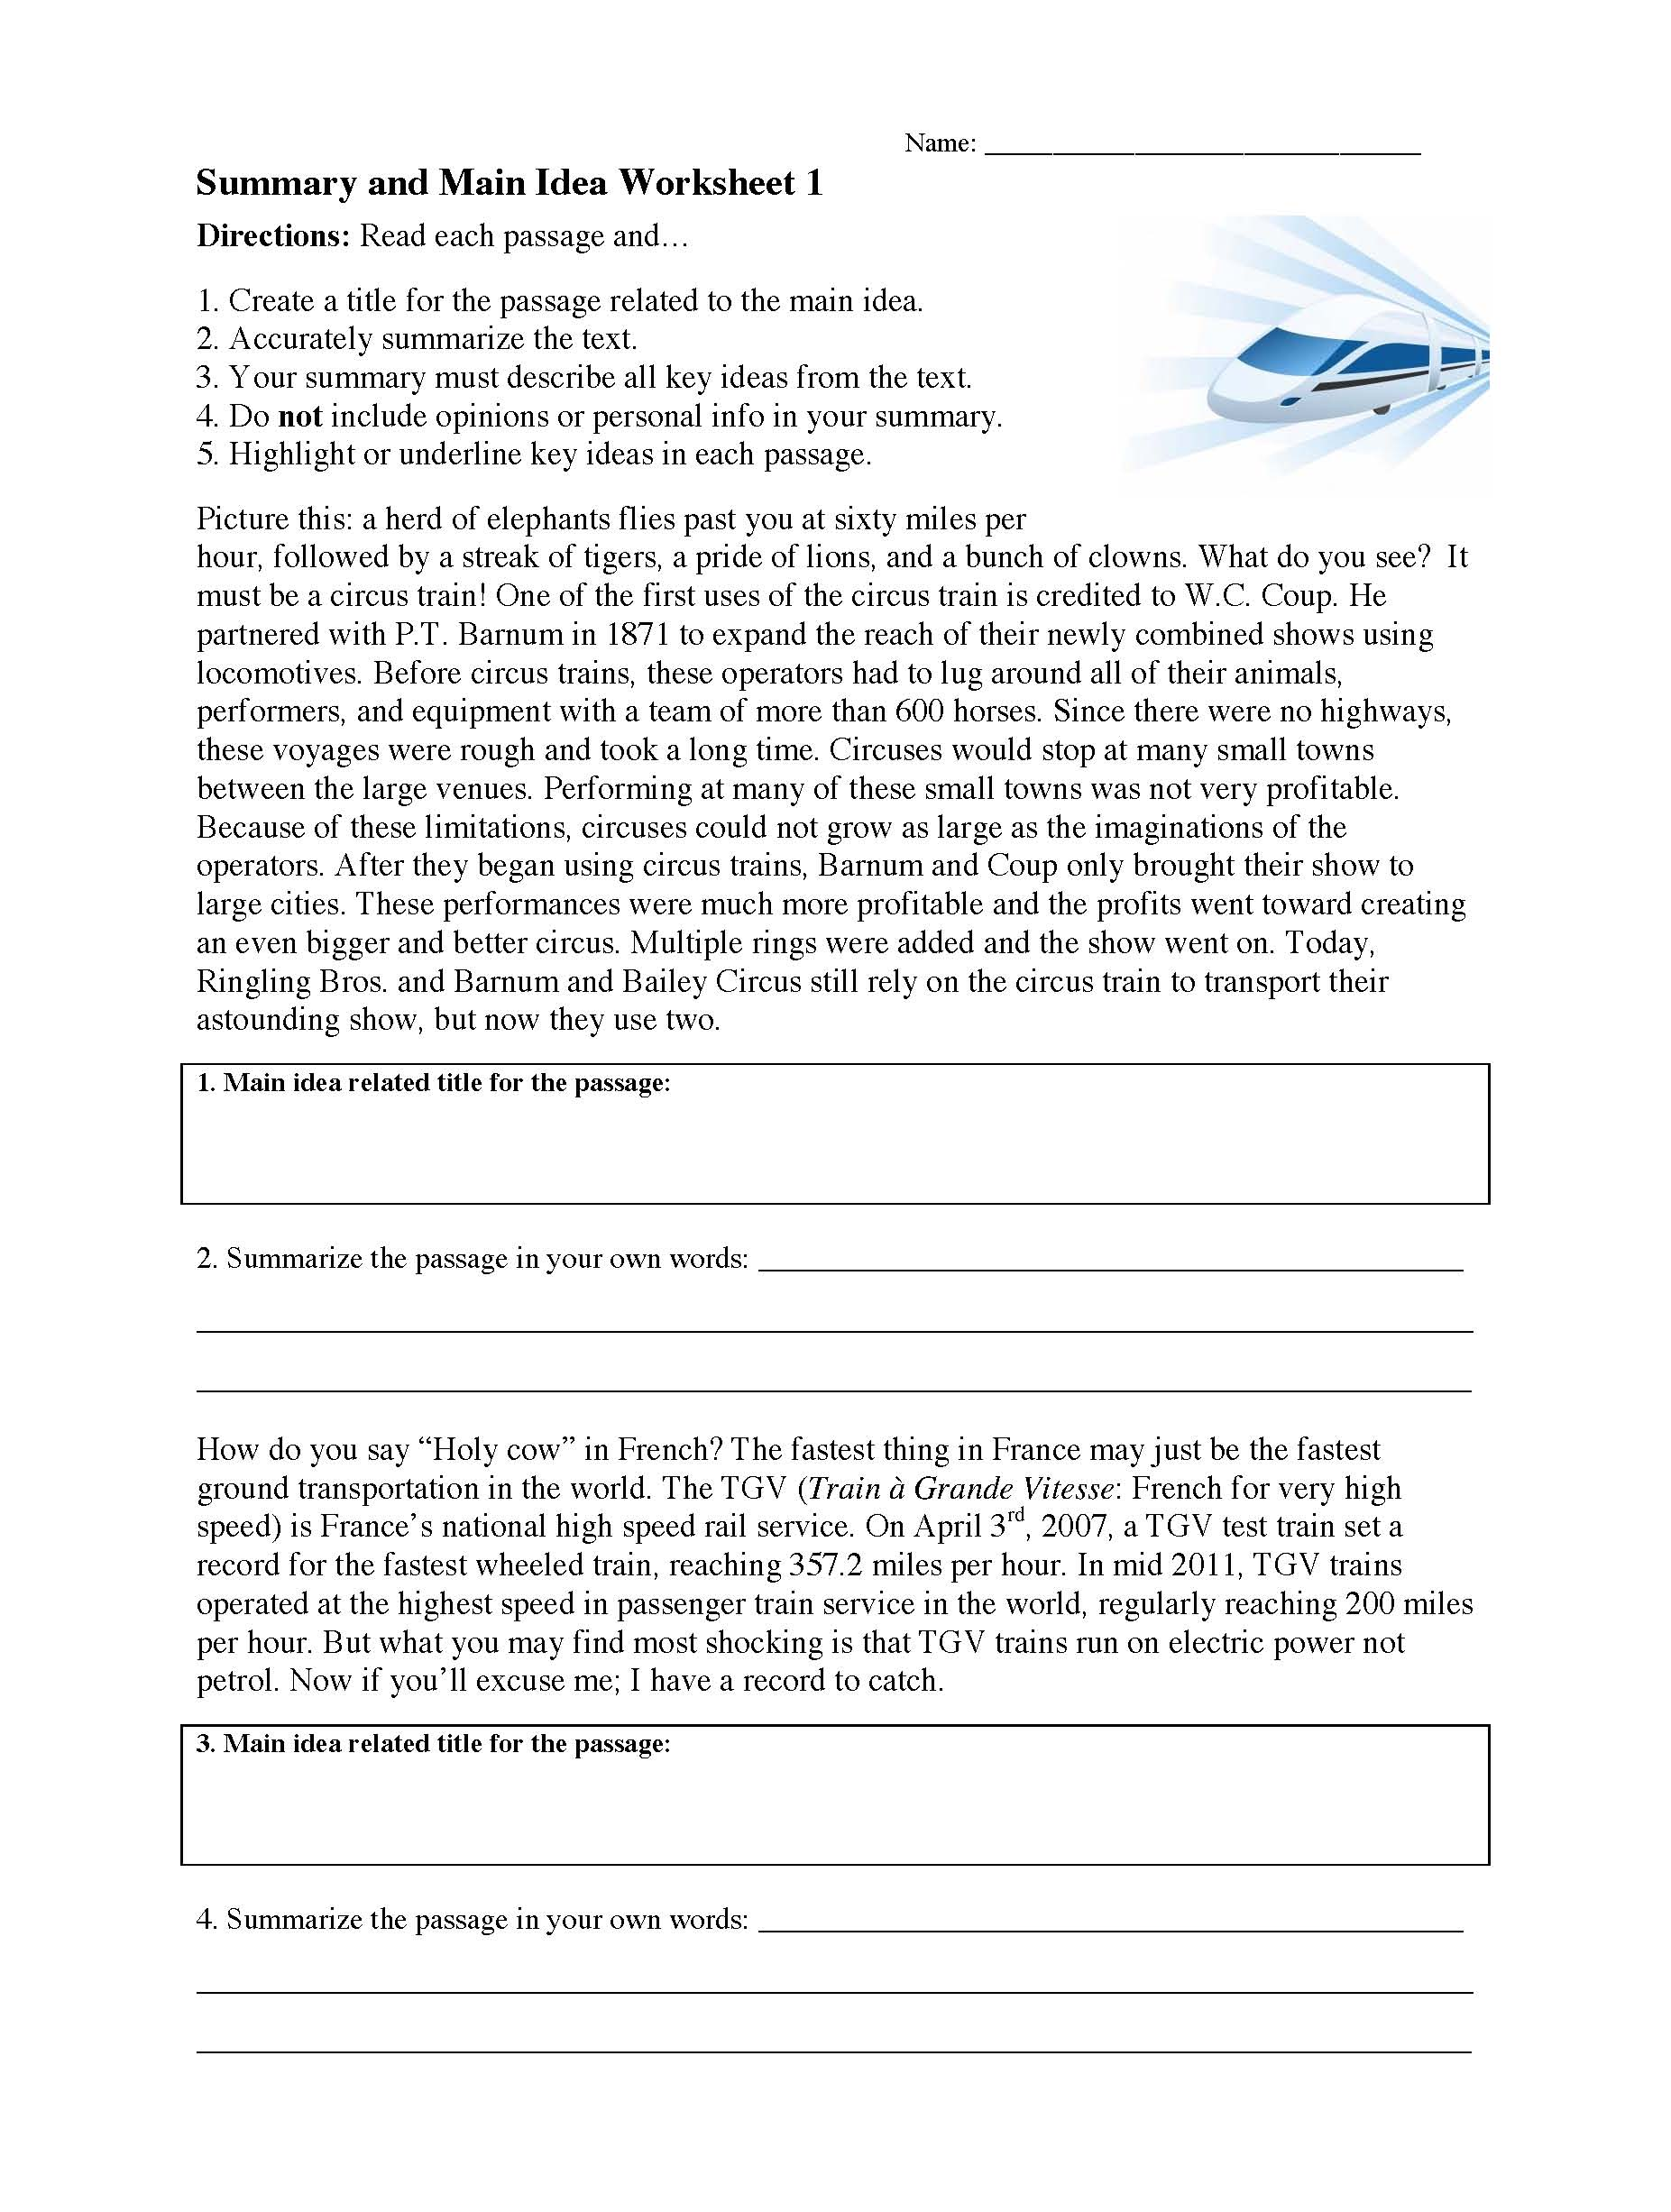 Worksheets Worksheets On Summarizing summary and main idea worksheet 1 preview this is a image of the 1